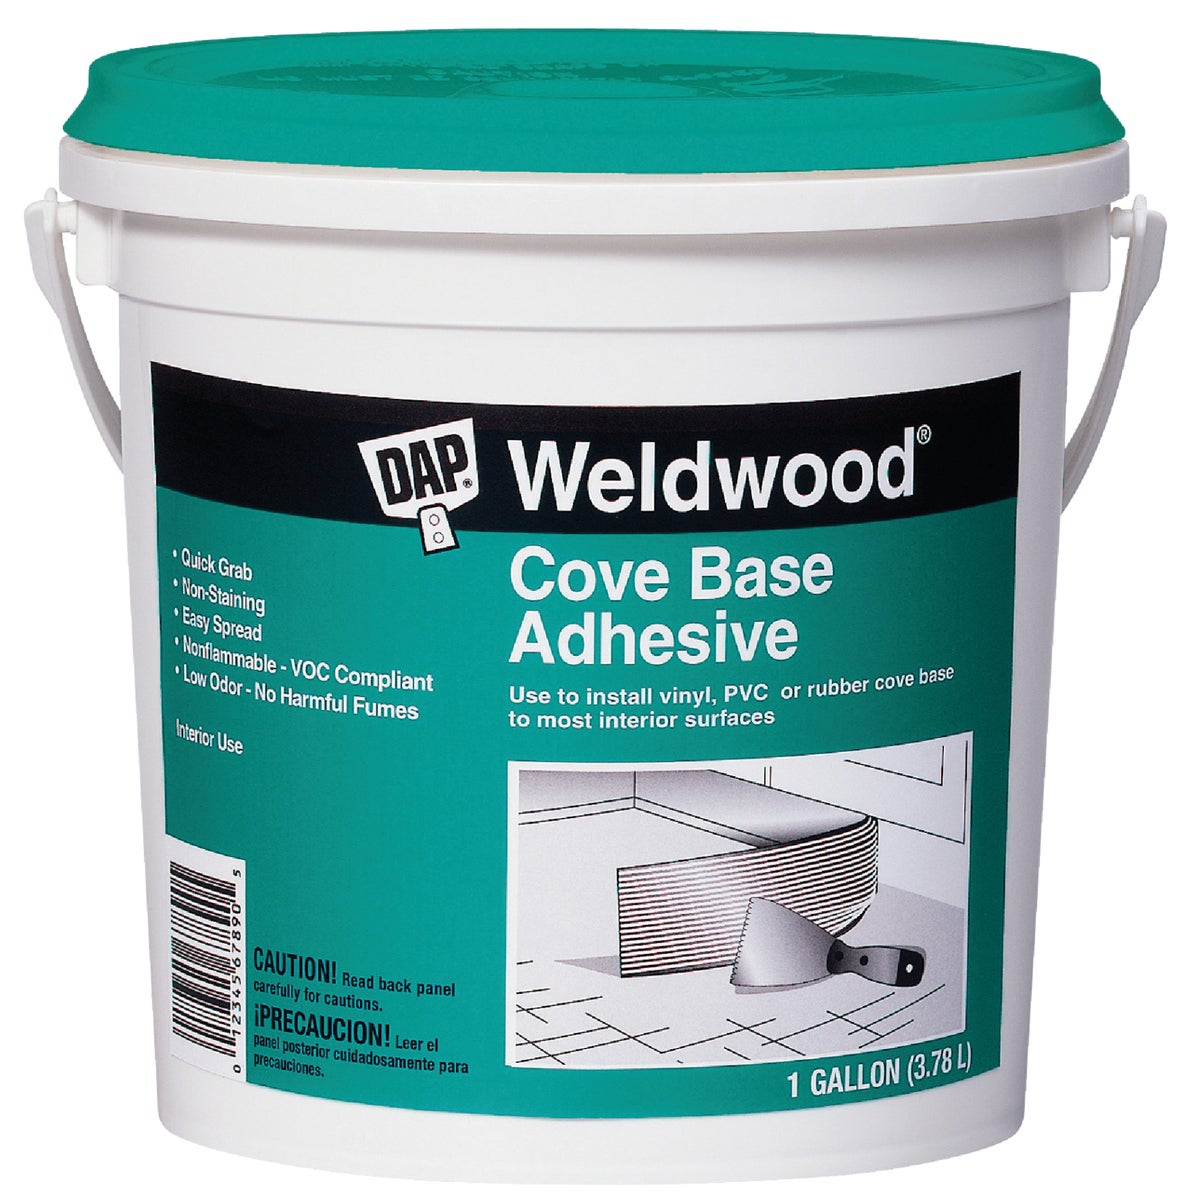 Gal Cove Base Adhesive